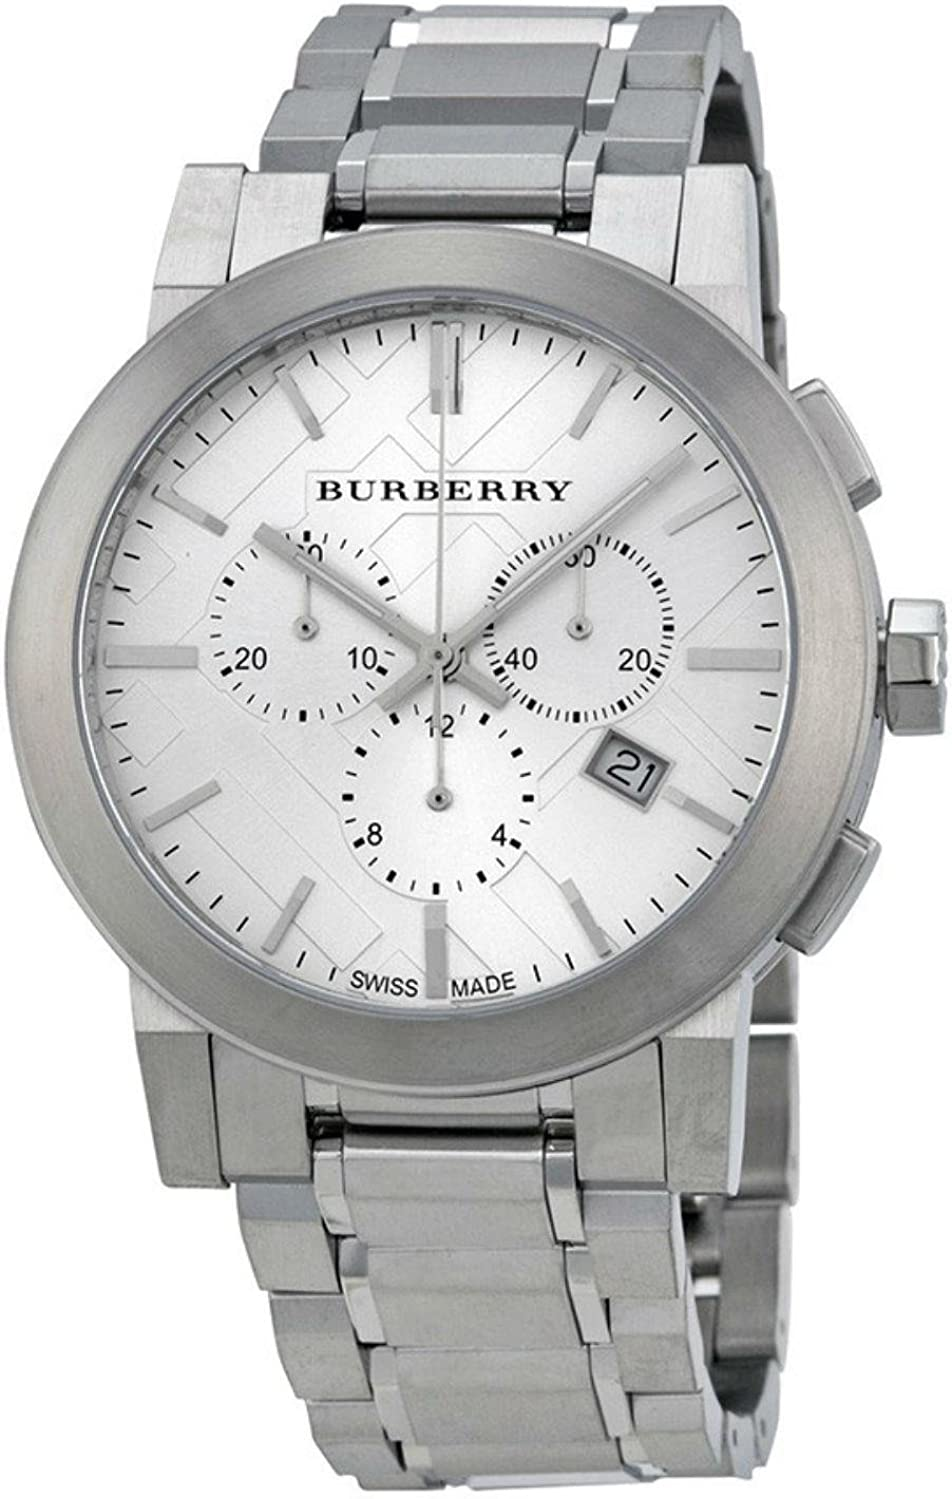 BURBERRY BU9350 - Reloj, Correa de Acero Inoxidable Color Plateado